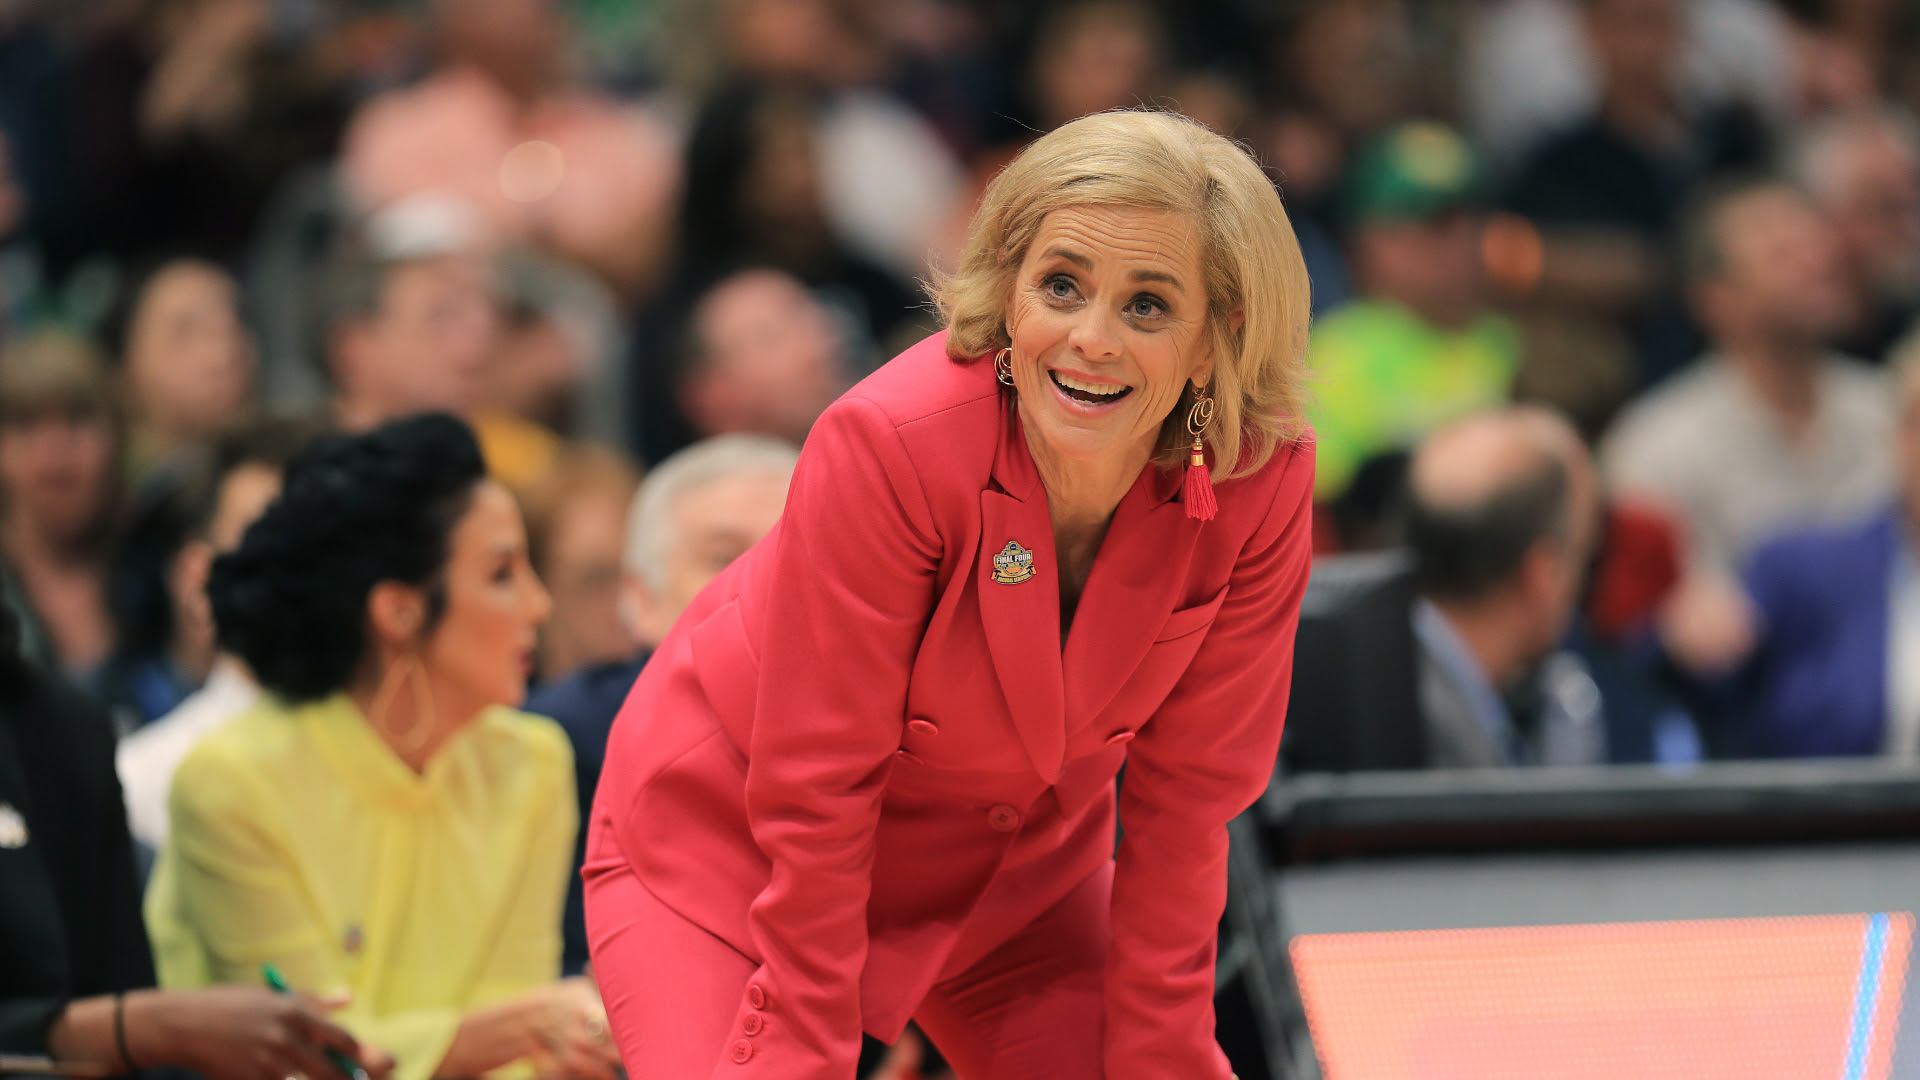 LSU hires Baylor's Kim Mulkey, three-time NCAA champion, as new women's basketball coach